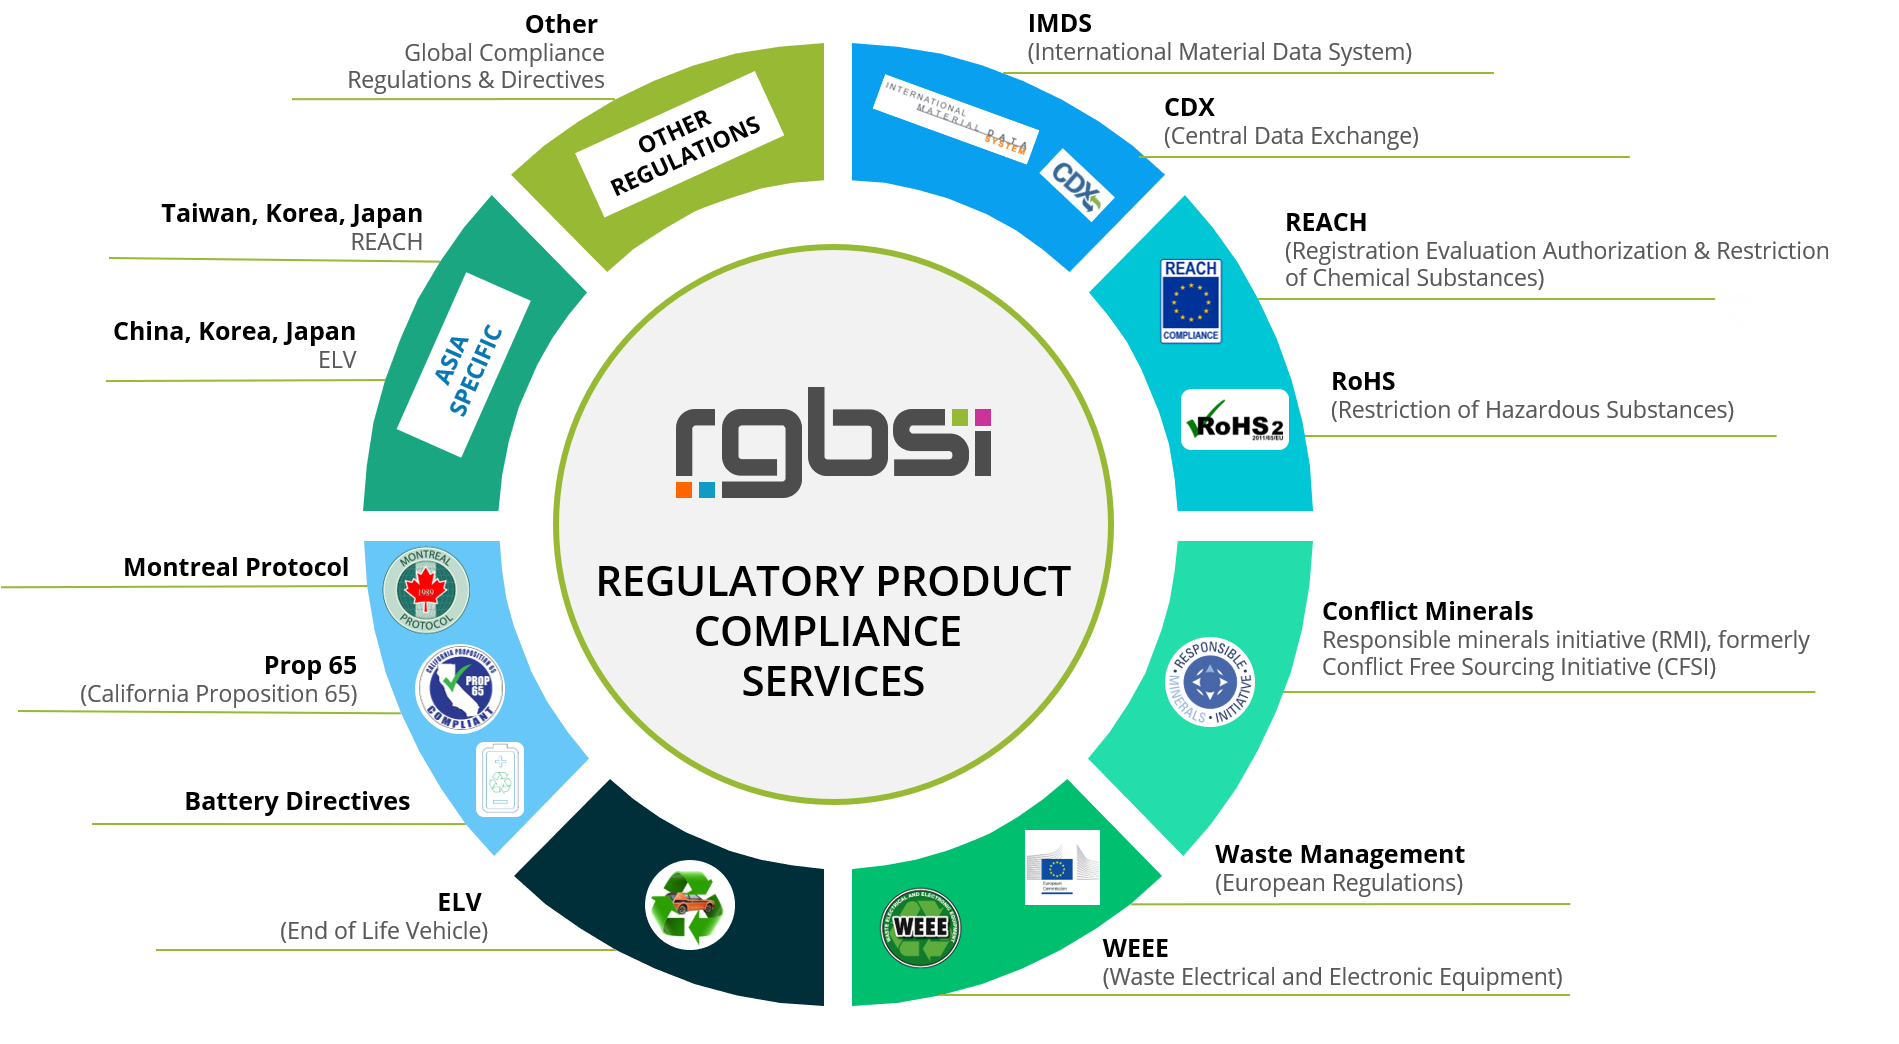 RGBSI Regulatory Product Compliance Services